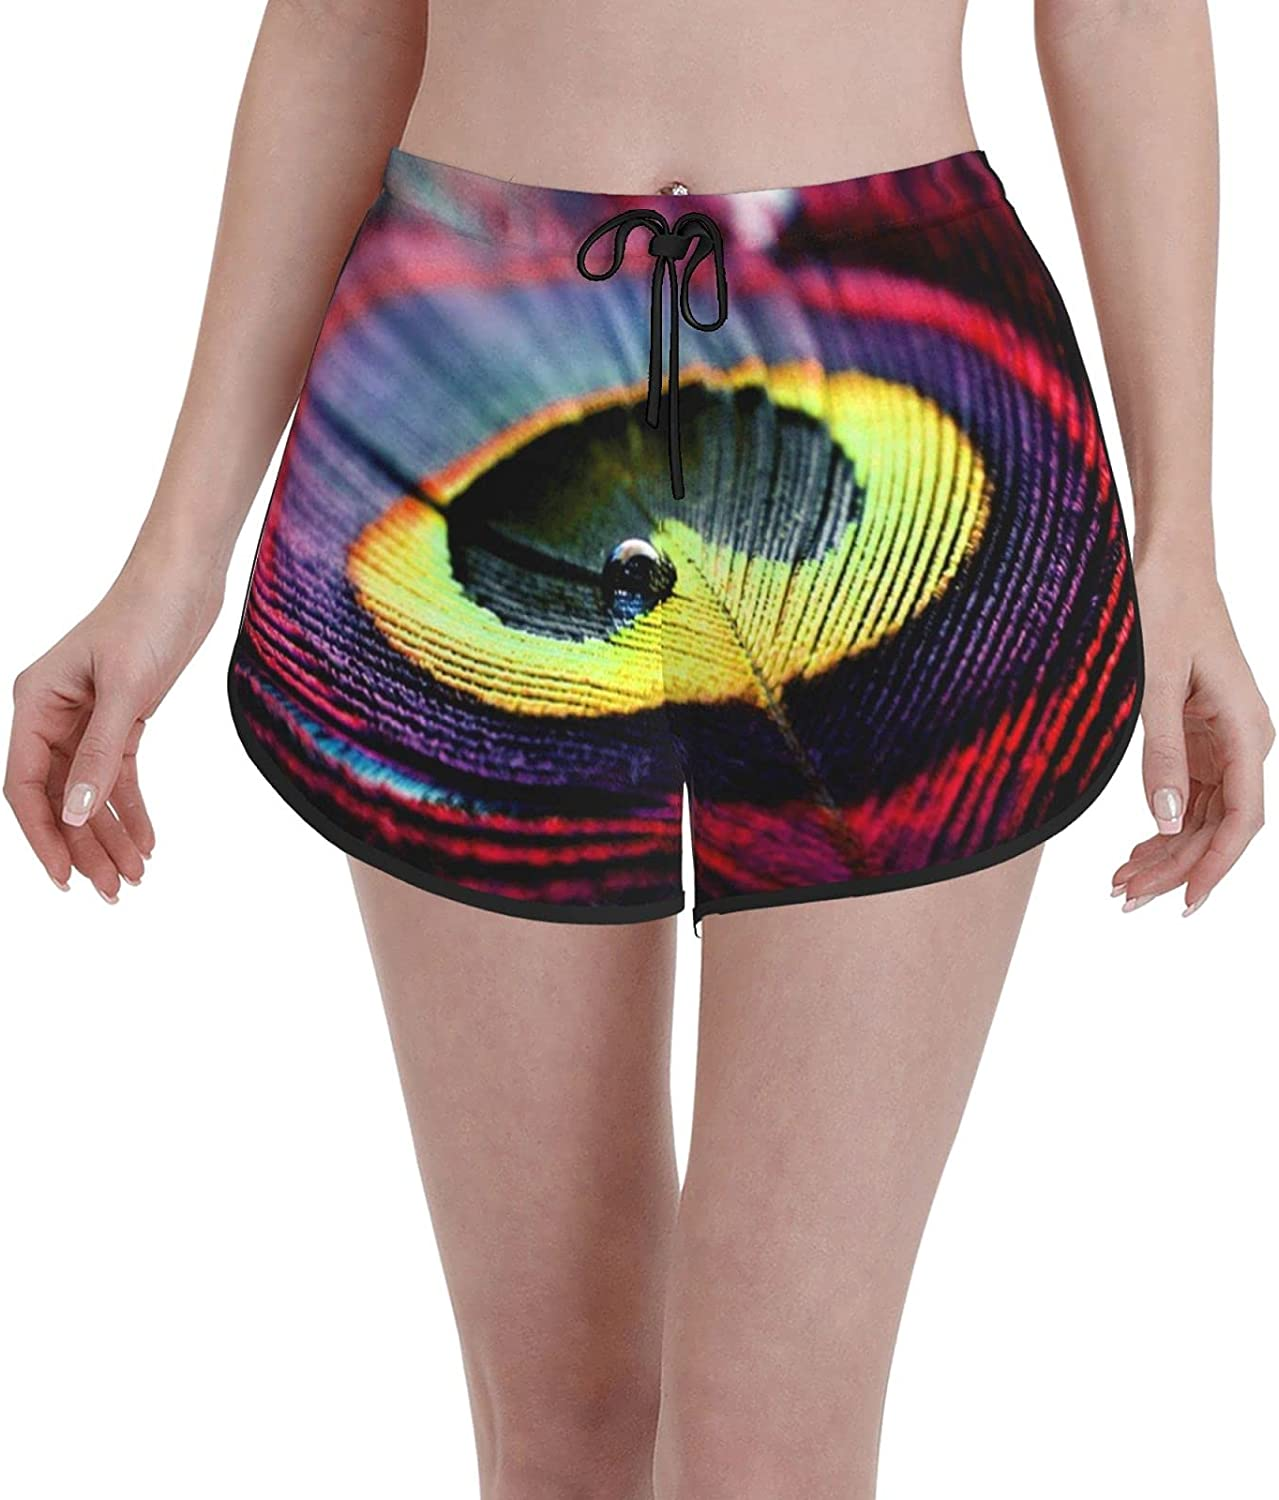 Online limited product Women's Girl's Max 44% OFF Swim Trunks Peacock Red Feather Strip Purple